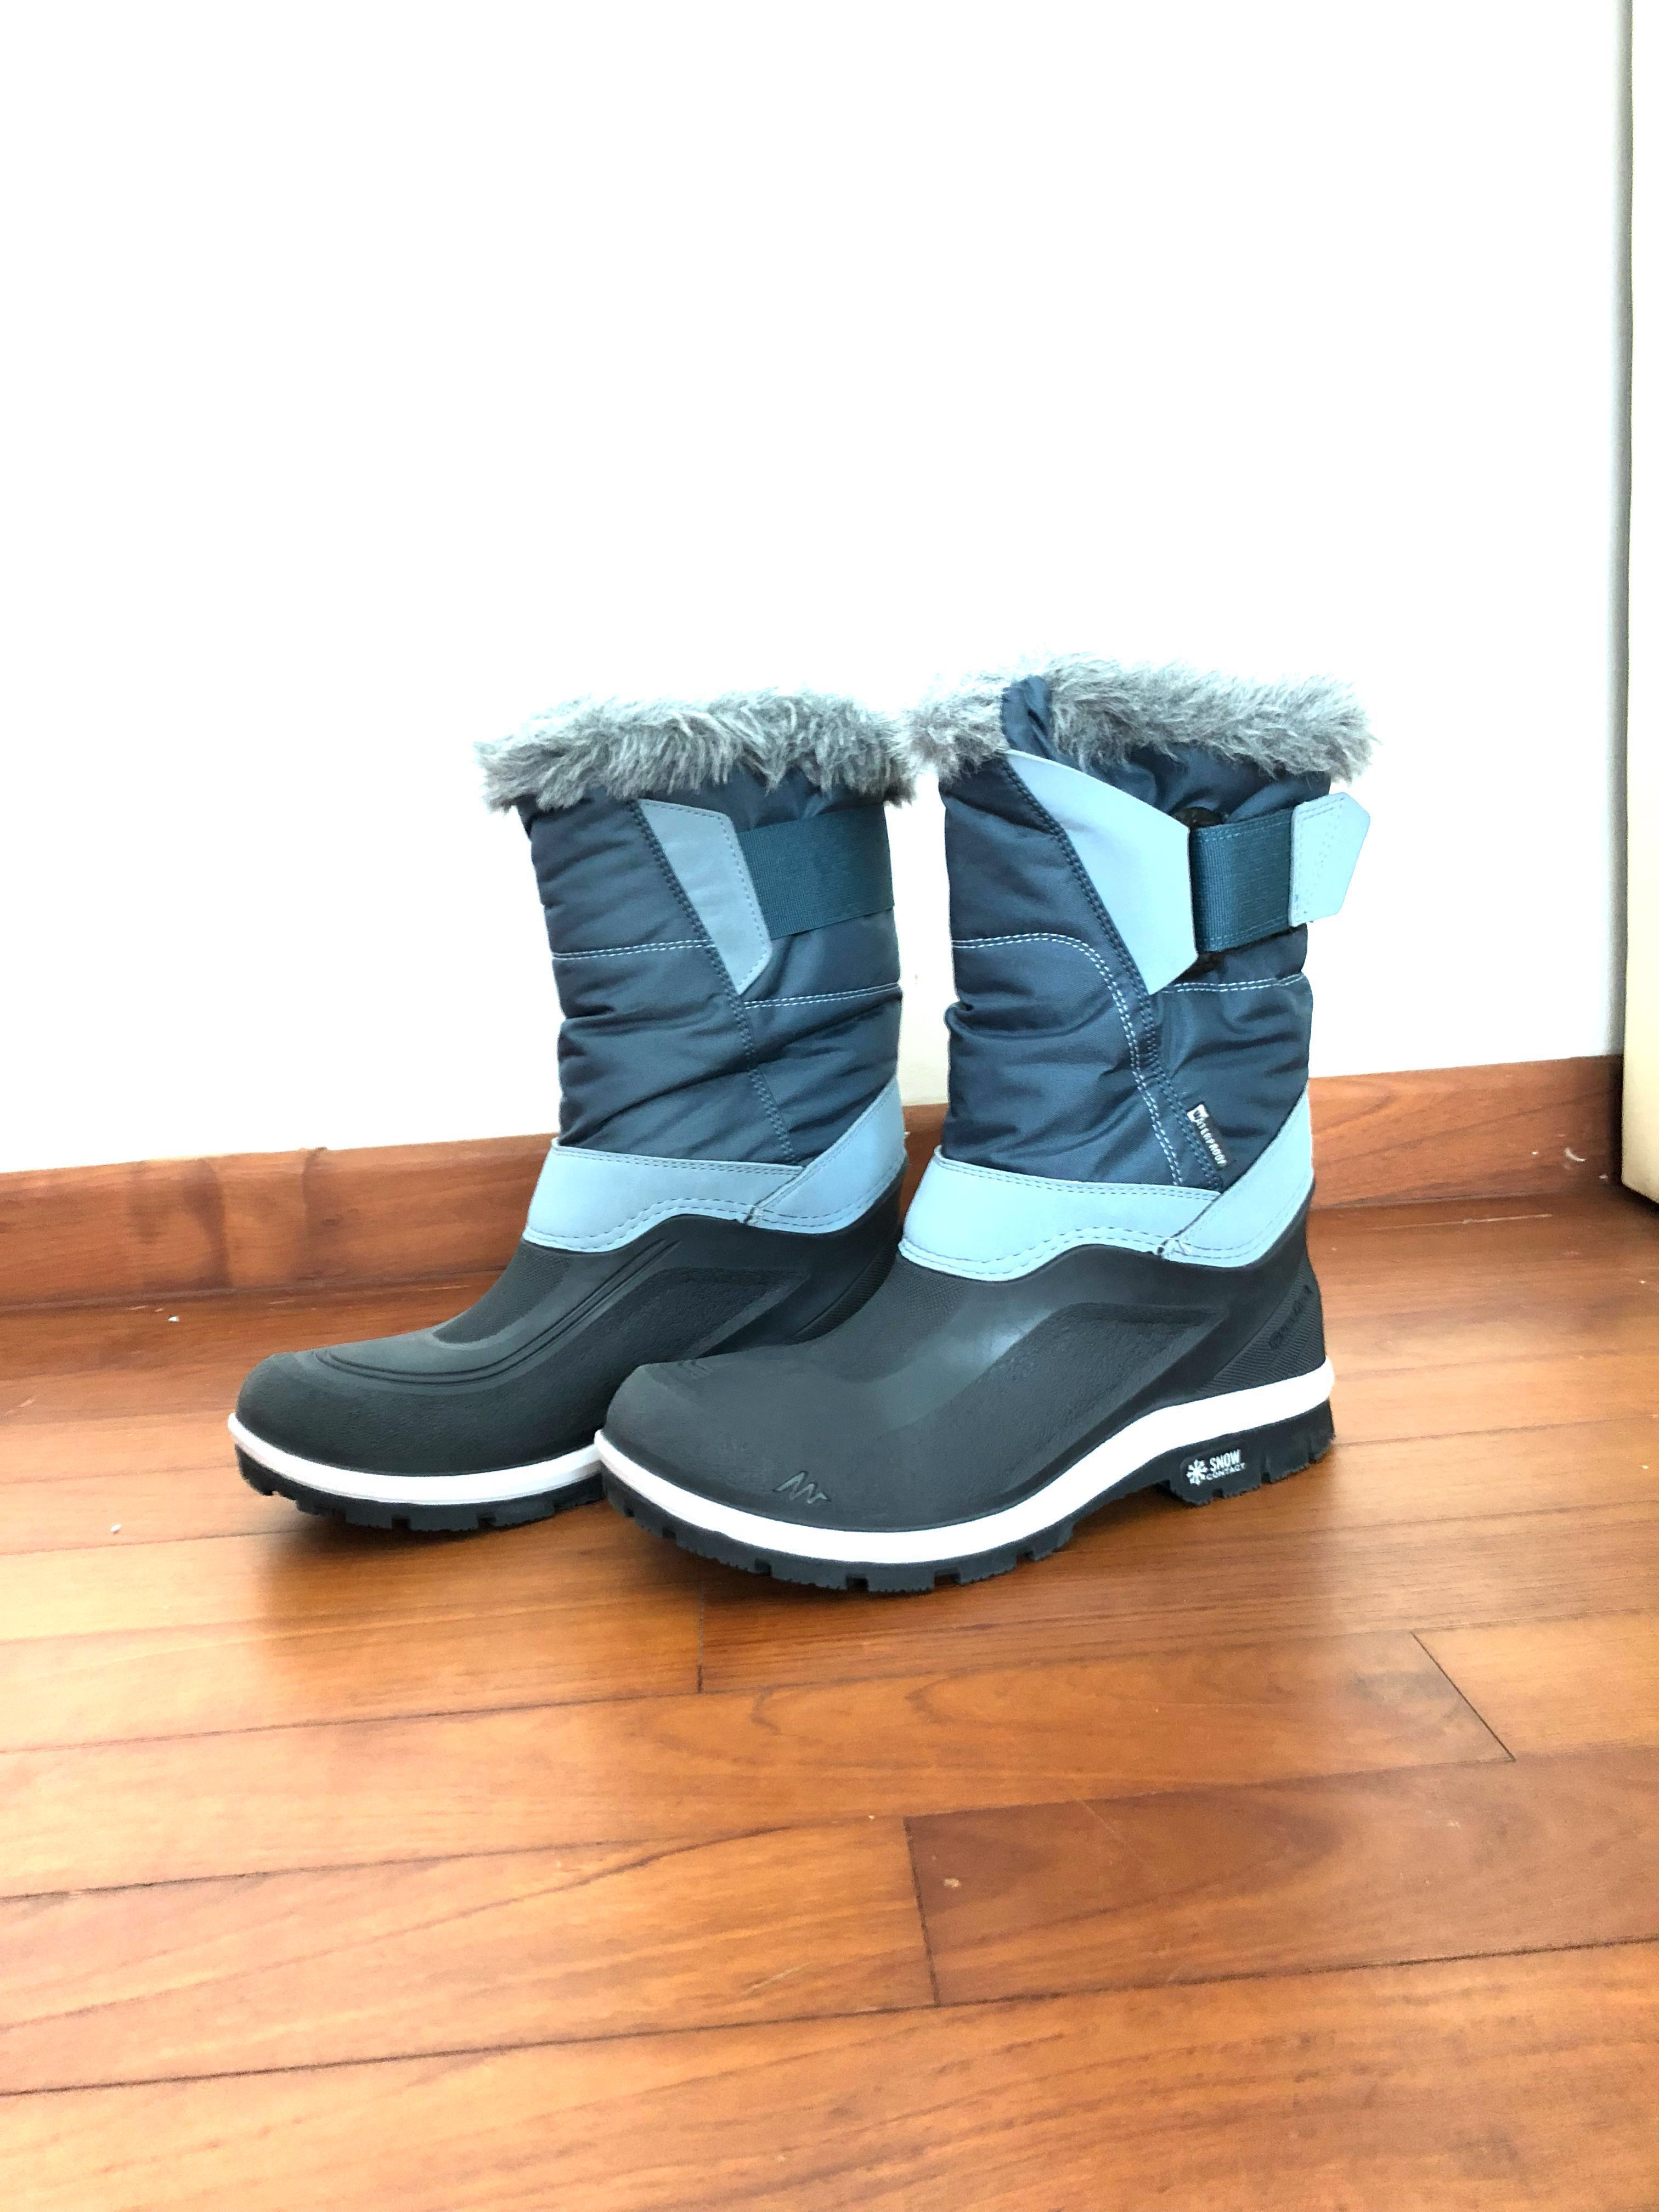 7101c5a00 Winter Snow Boots from Decathlon